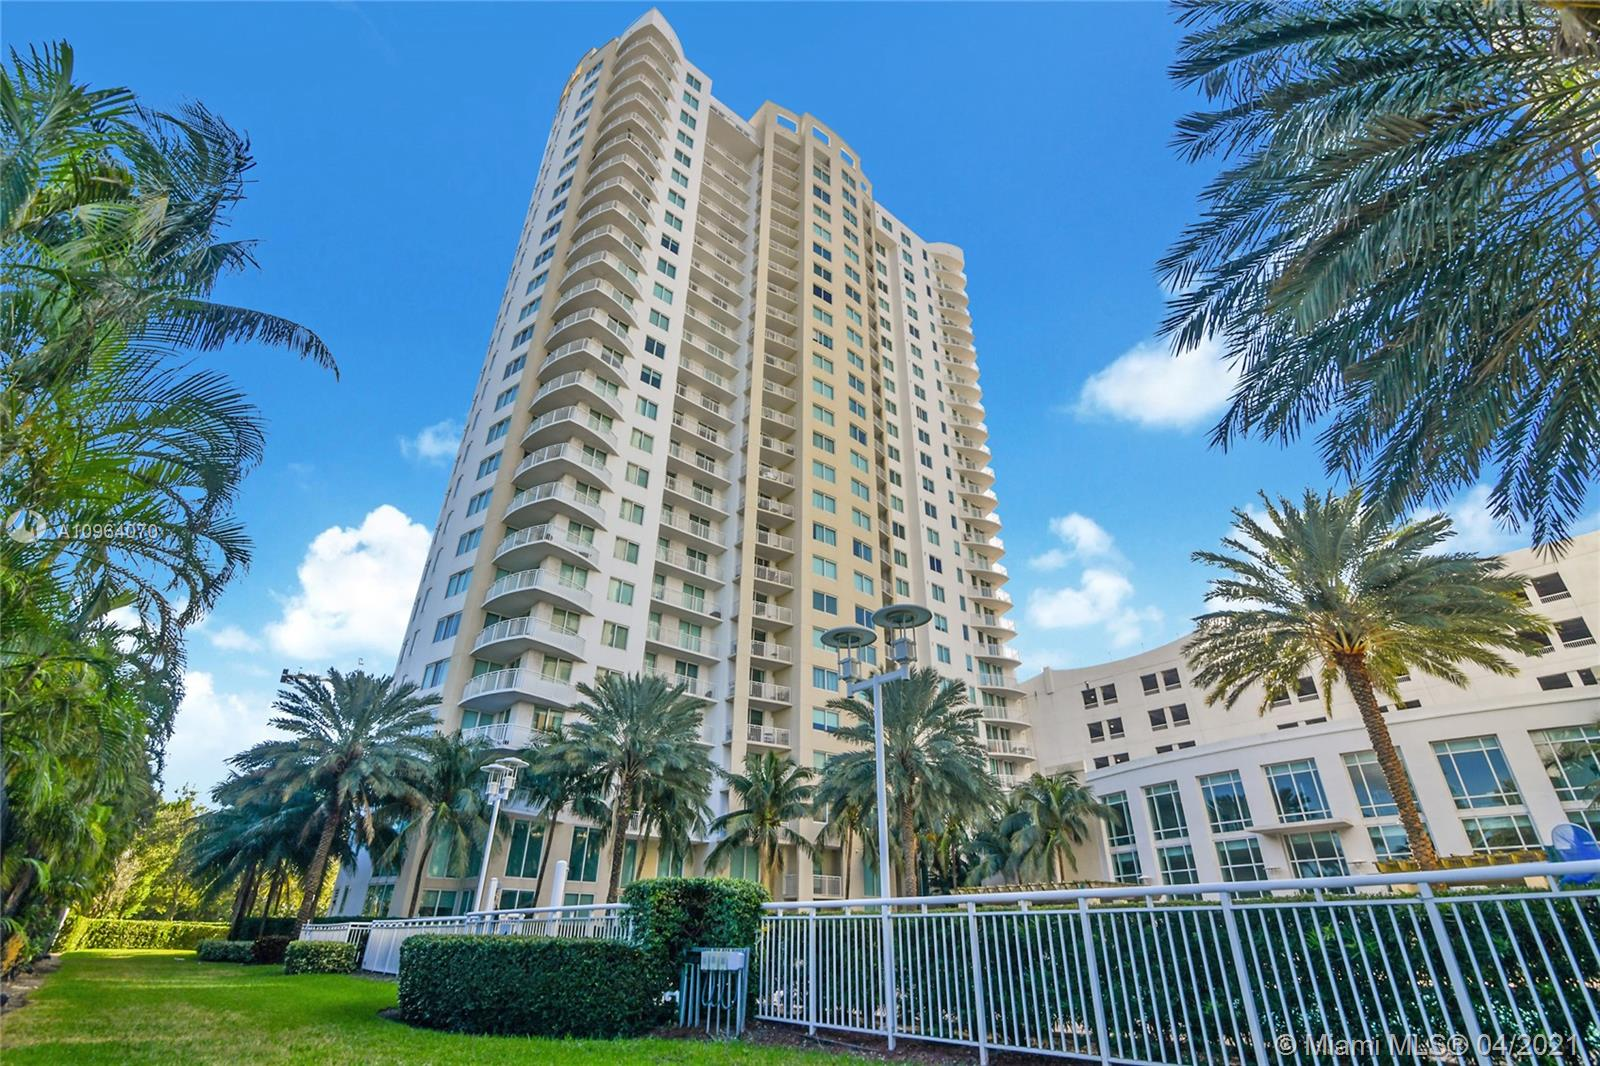 Photo of 1755 Hallandale Beach Blvd #1504E, Hallandale Beach, Florida, 33009 -